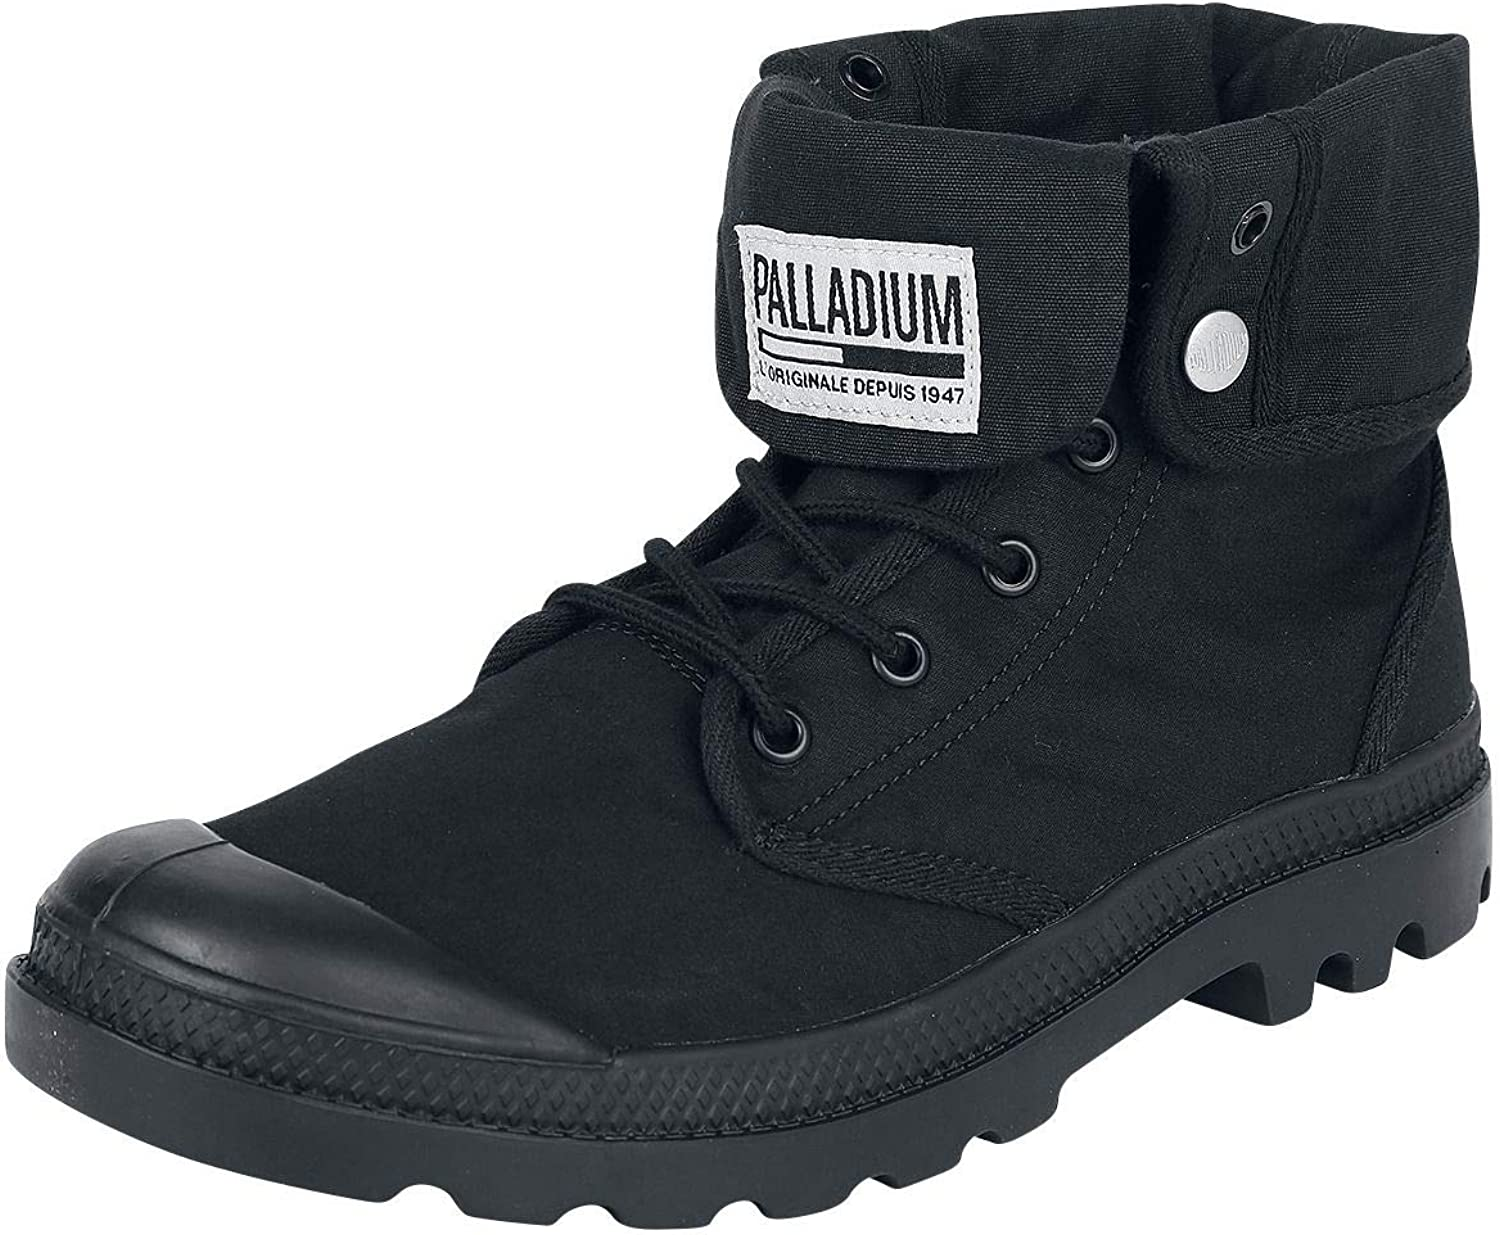 Palladium Army Trng Camp Boots in Black